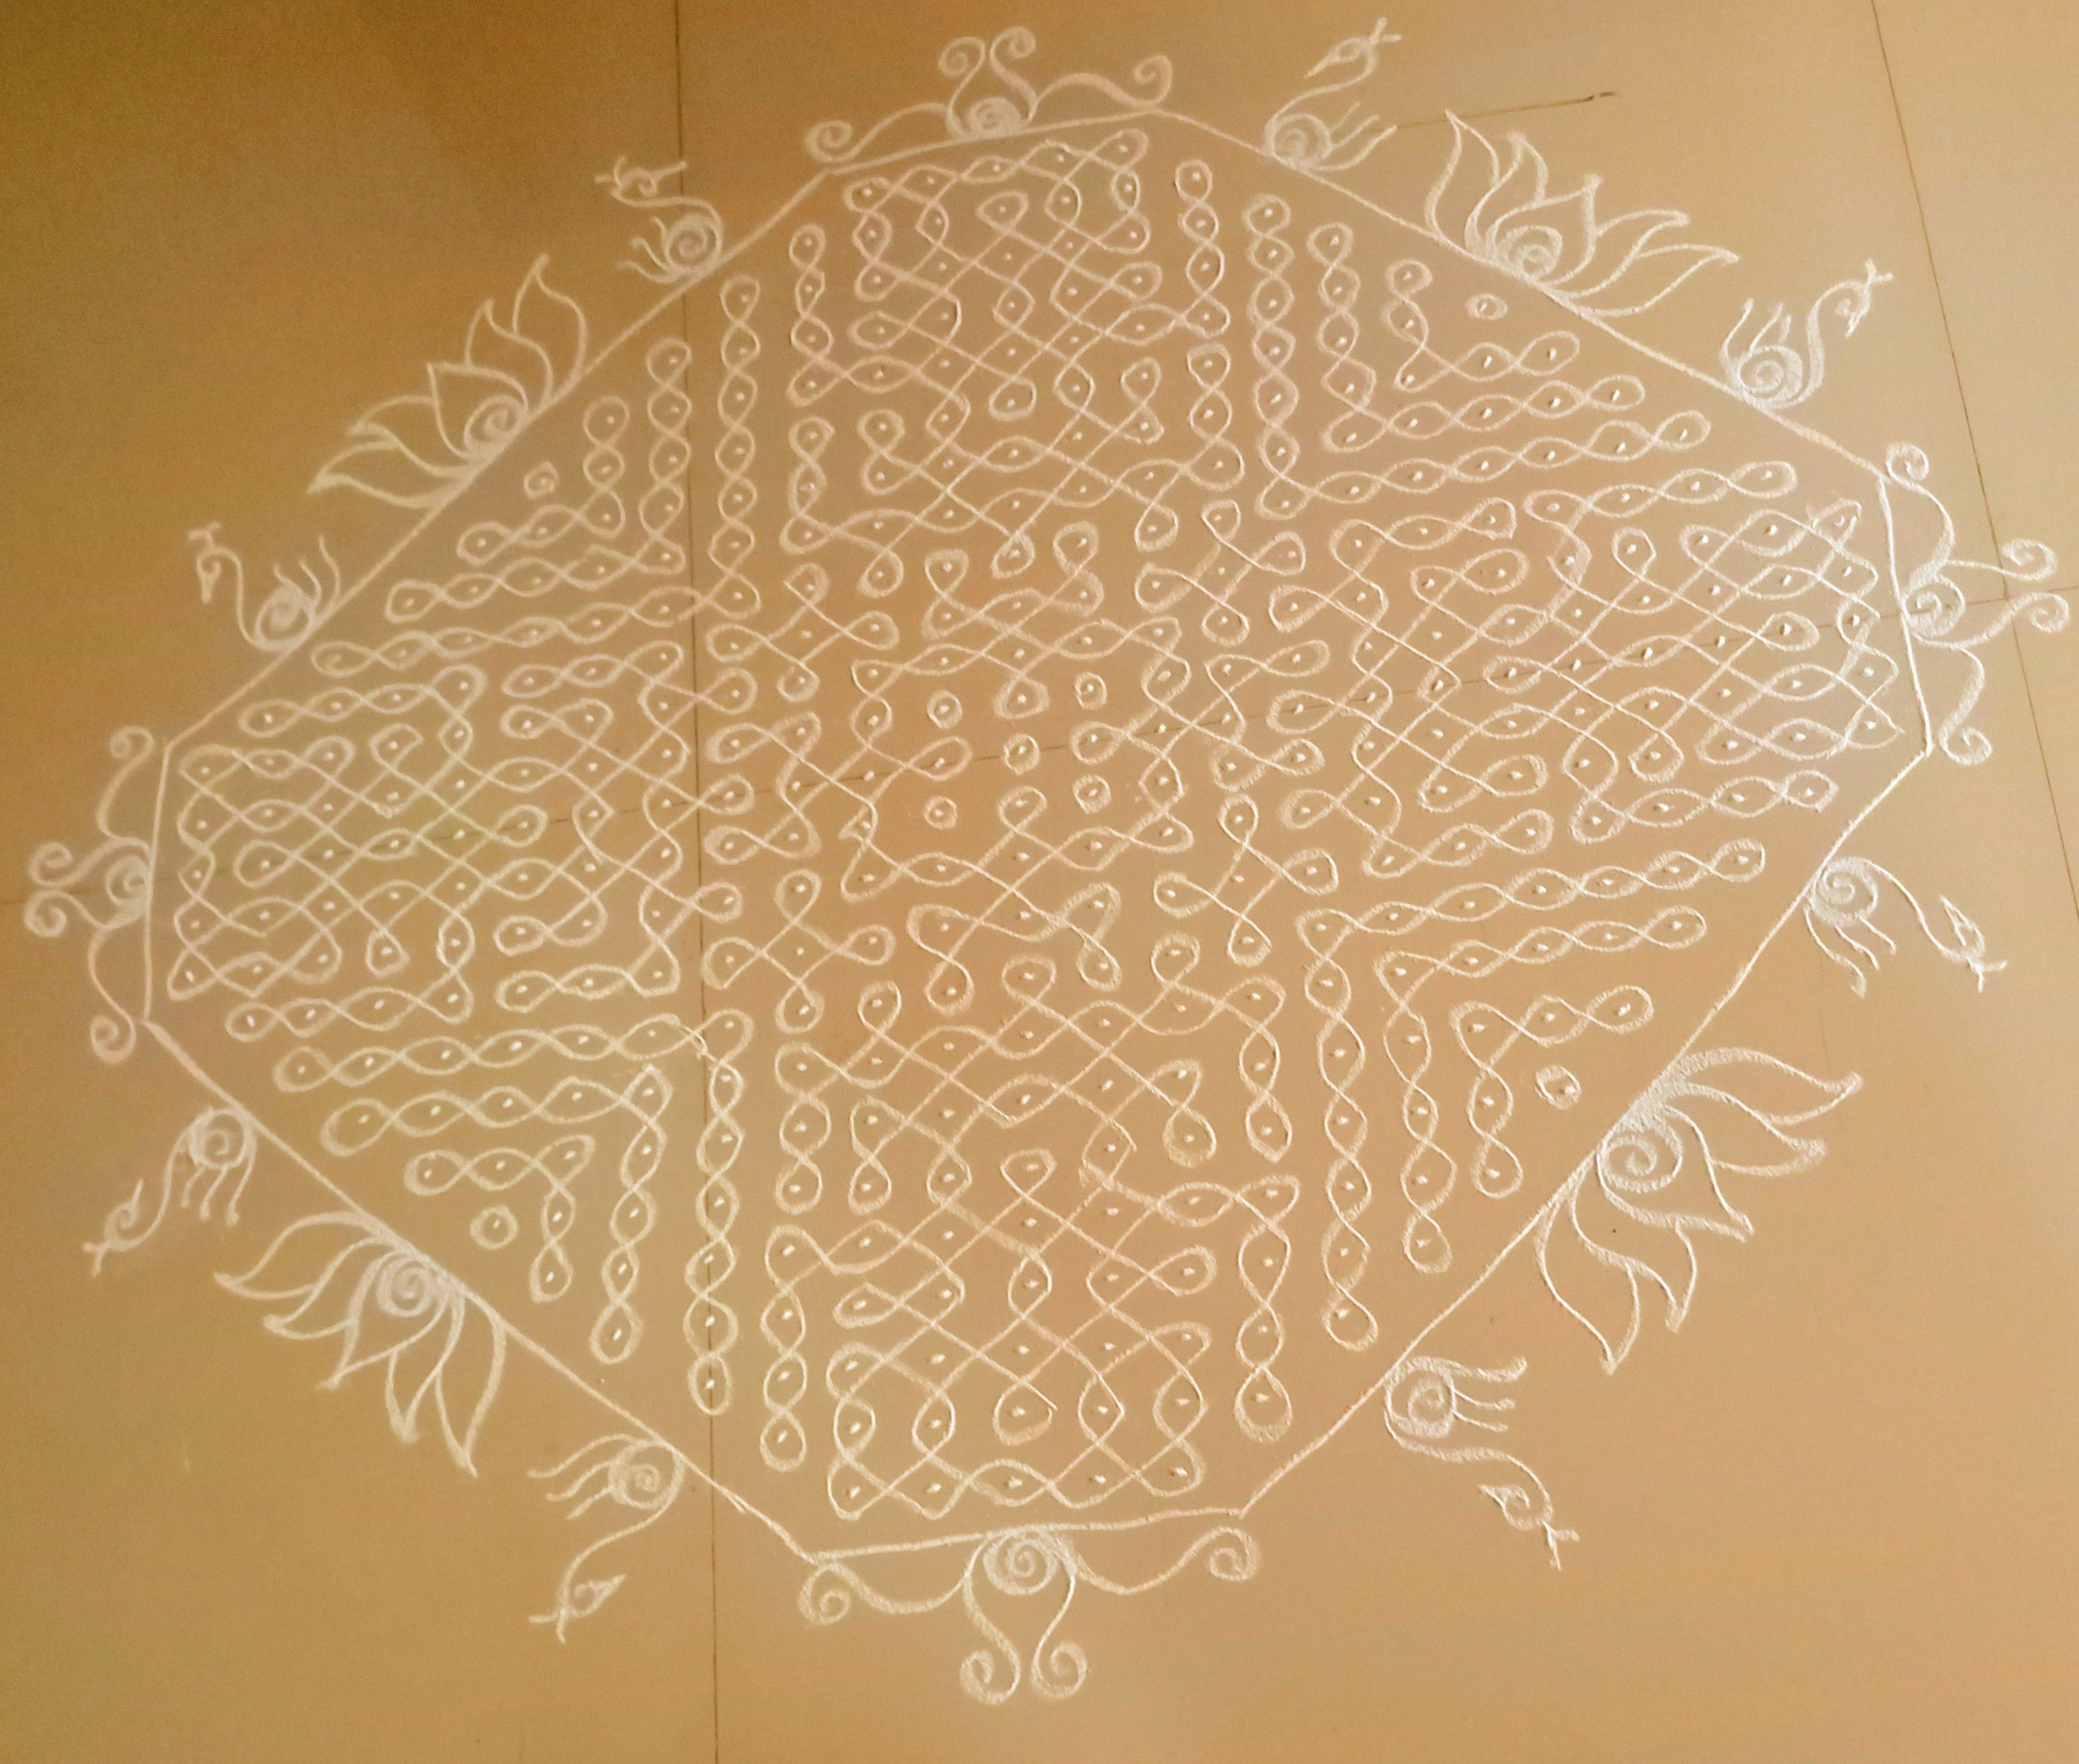 White Curls || 25 Dots Sikku kolam for contest